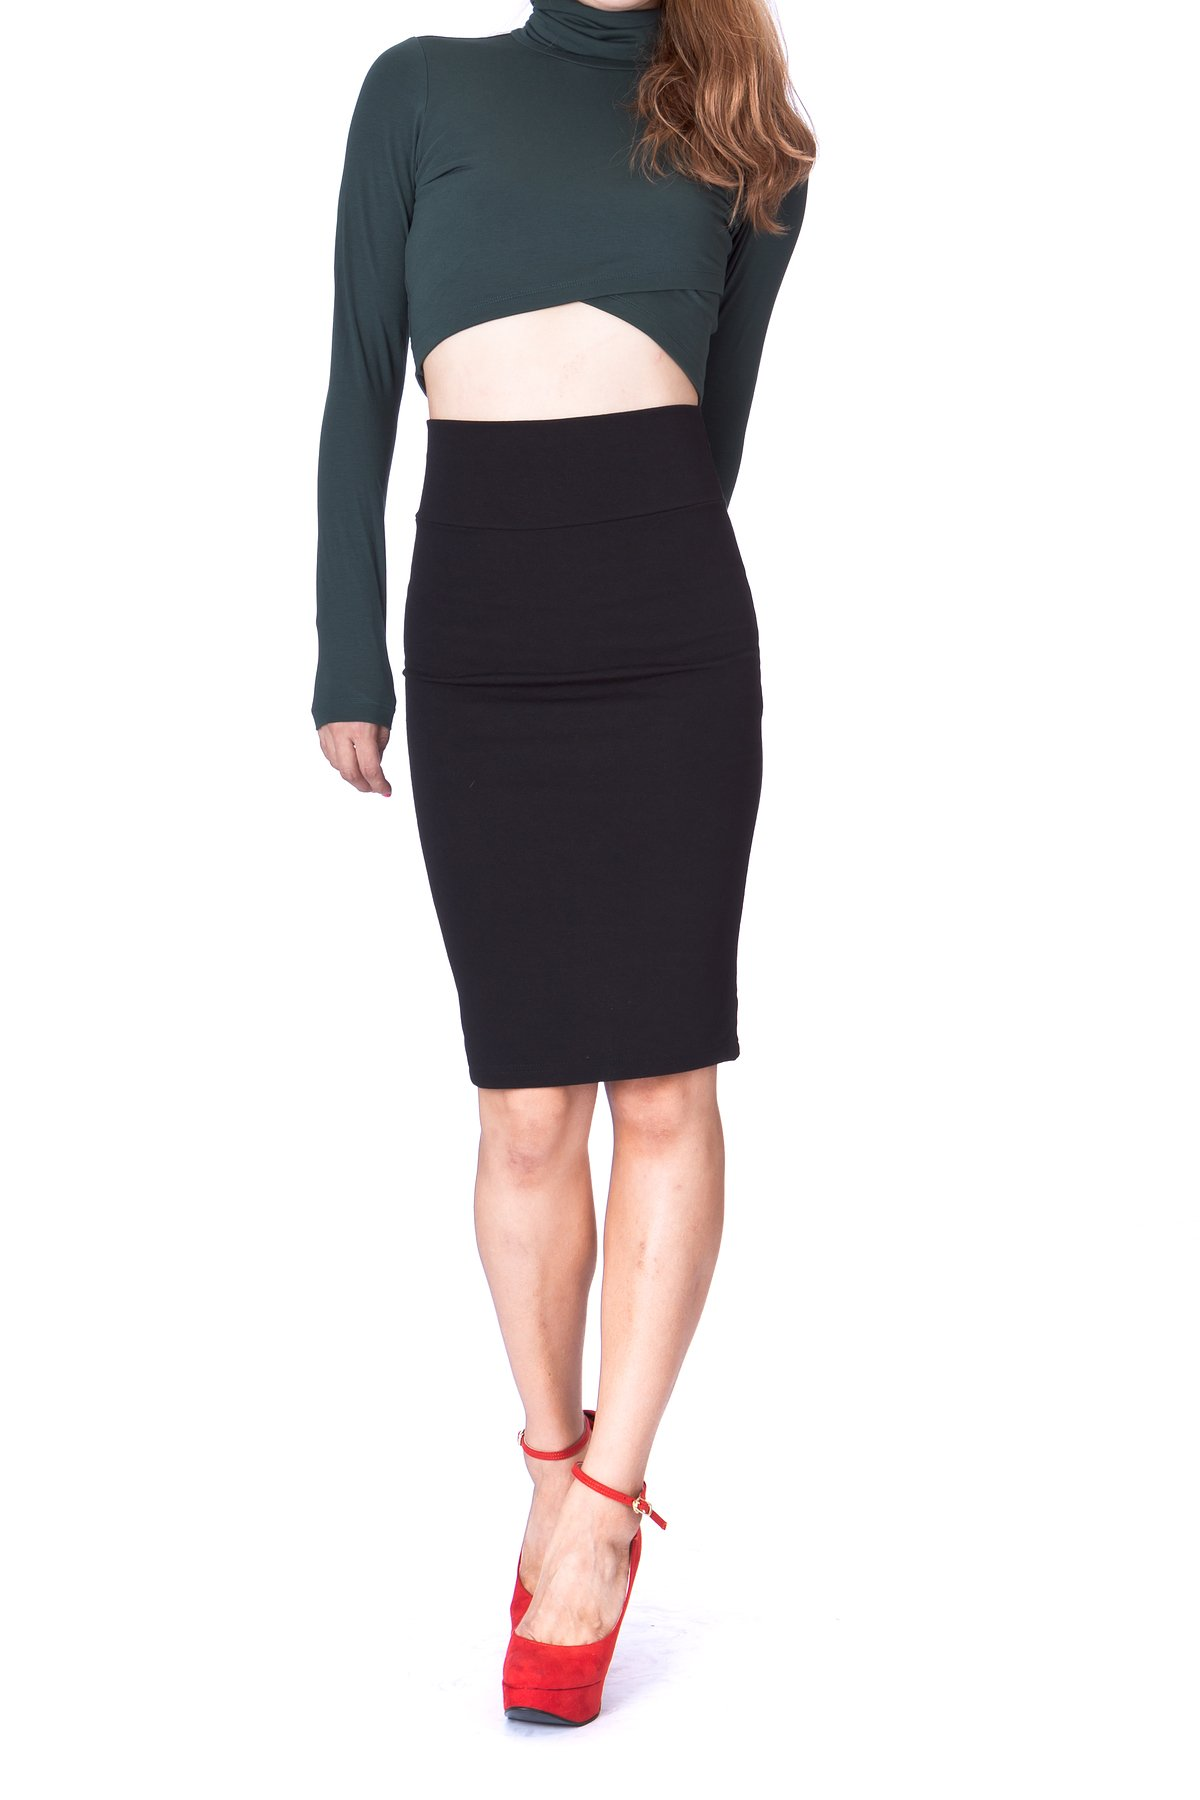 Every Occasion Stretch Pull on Wide High Waist Bodycon Pencil Knee Length Midi Skirt Black 2